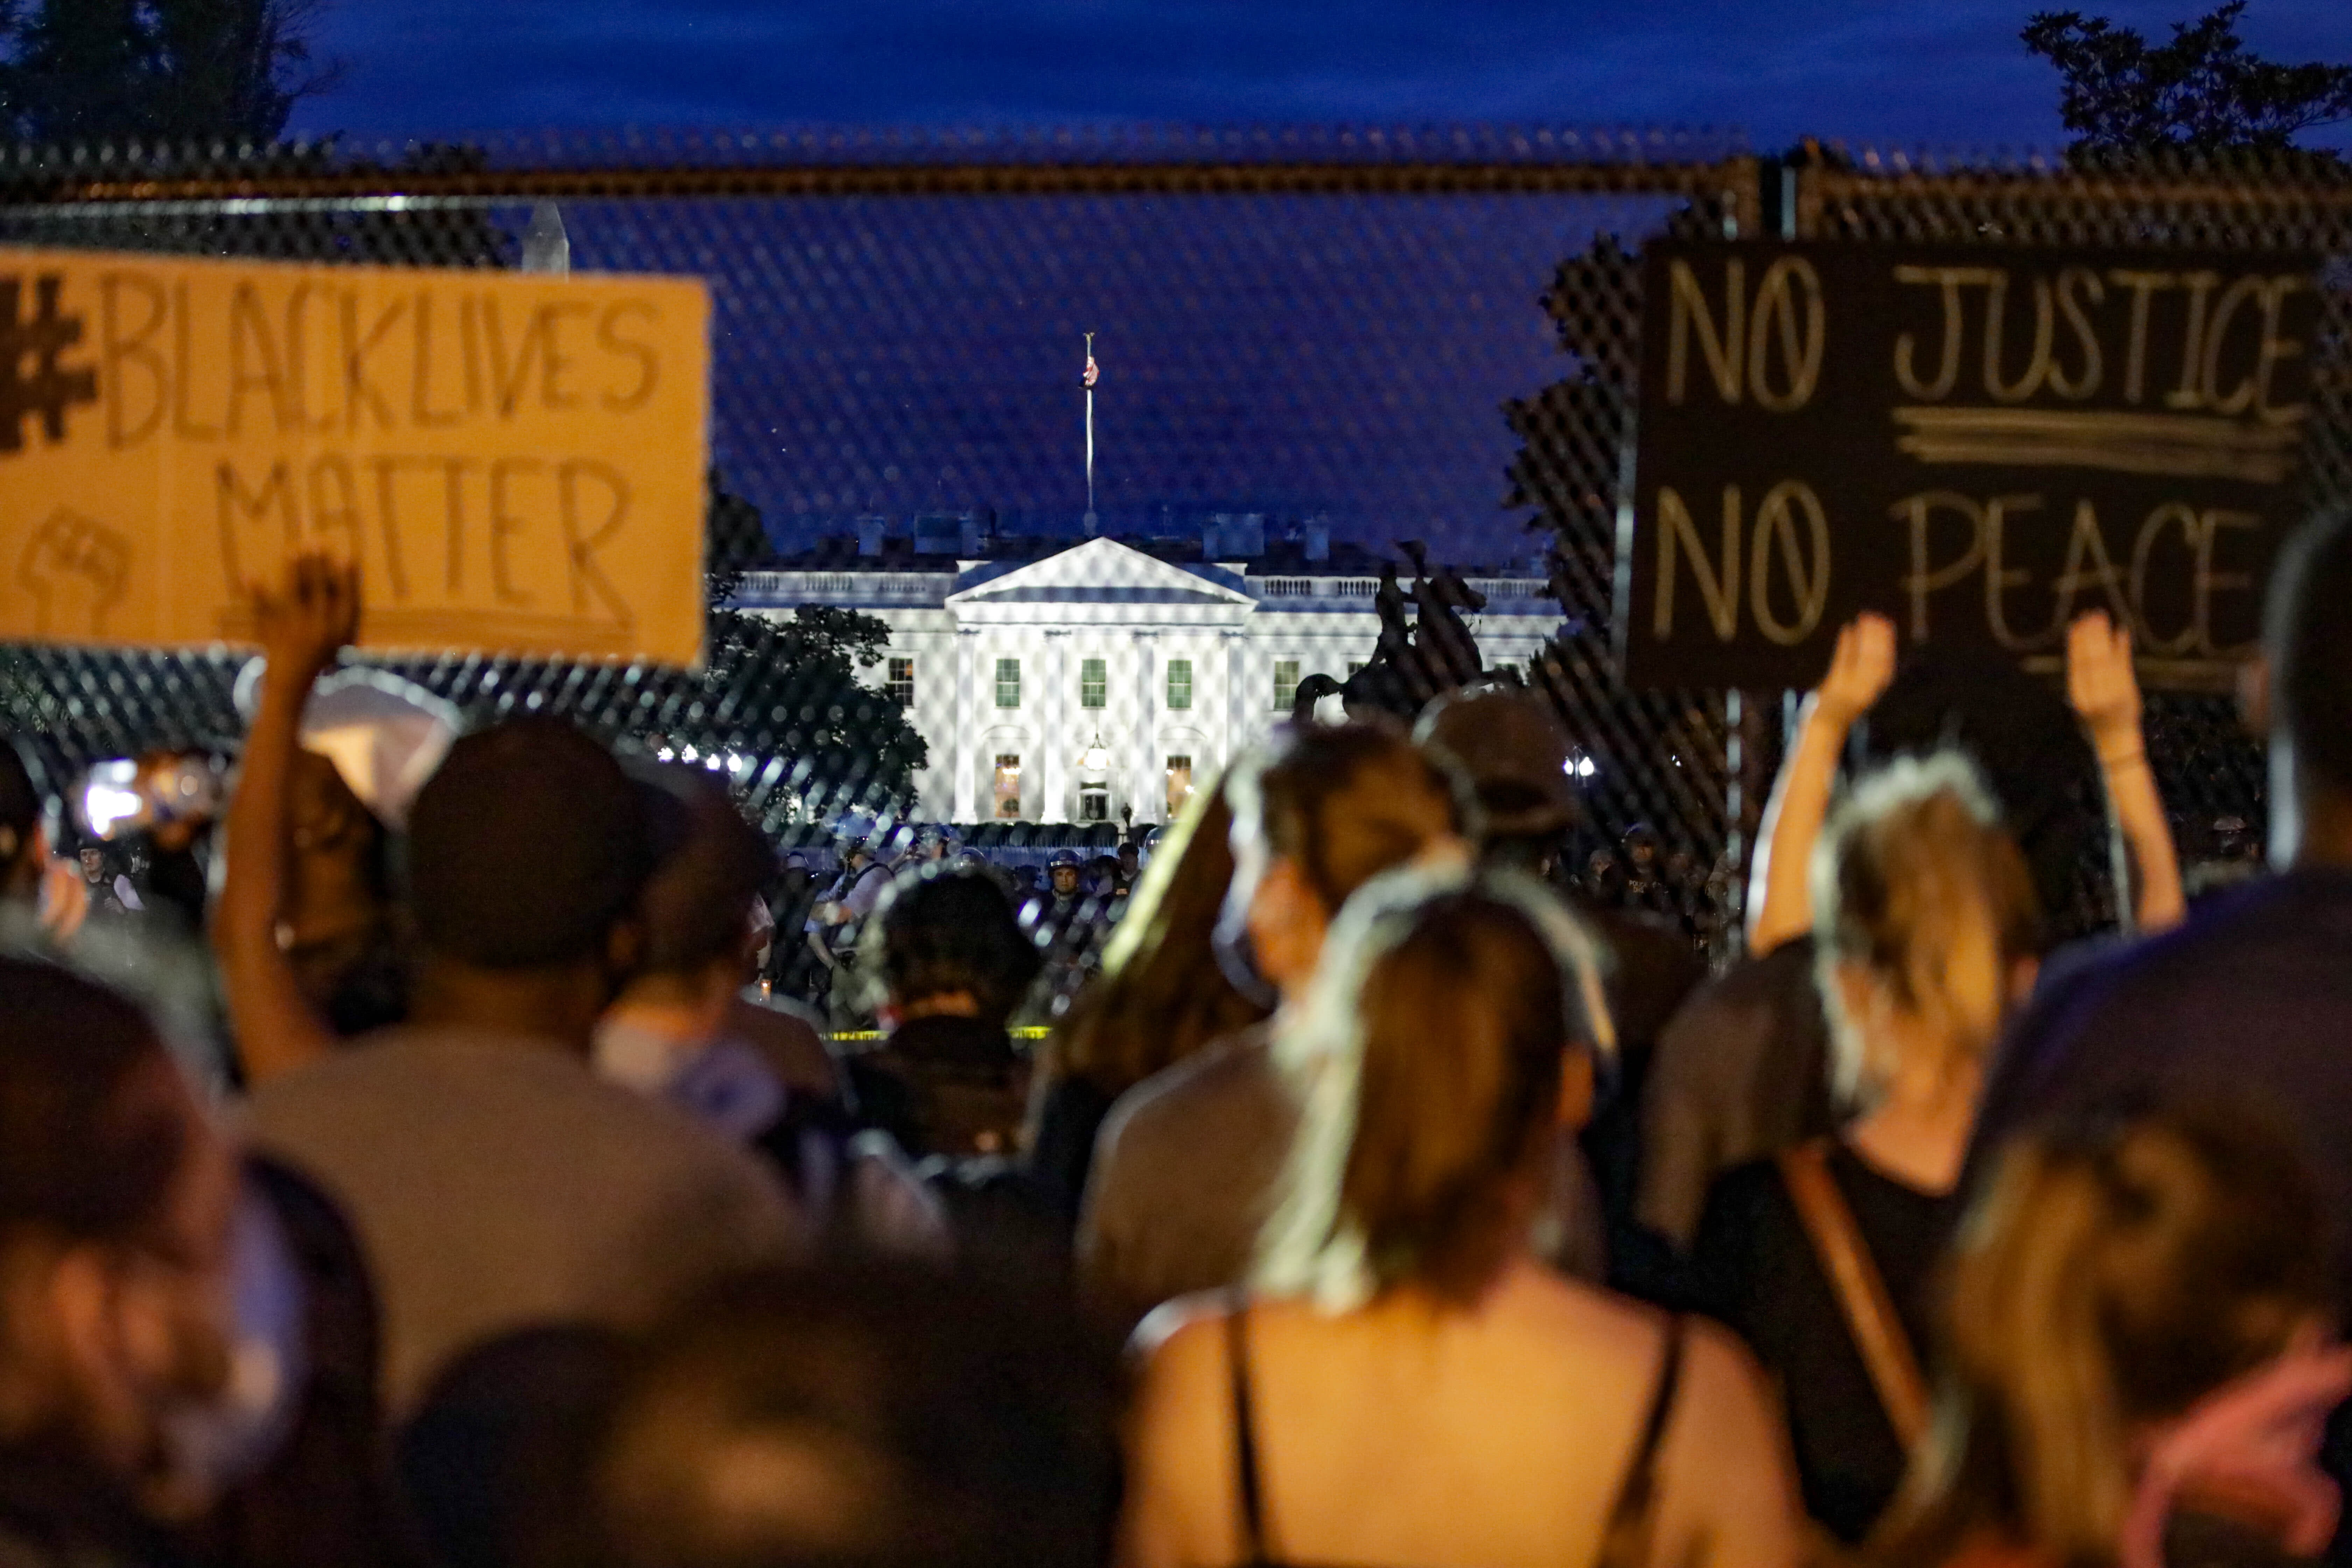 Tensions ease as thousands peacefully demonstrate overnight